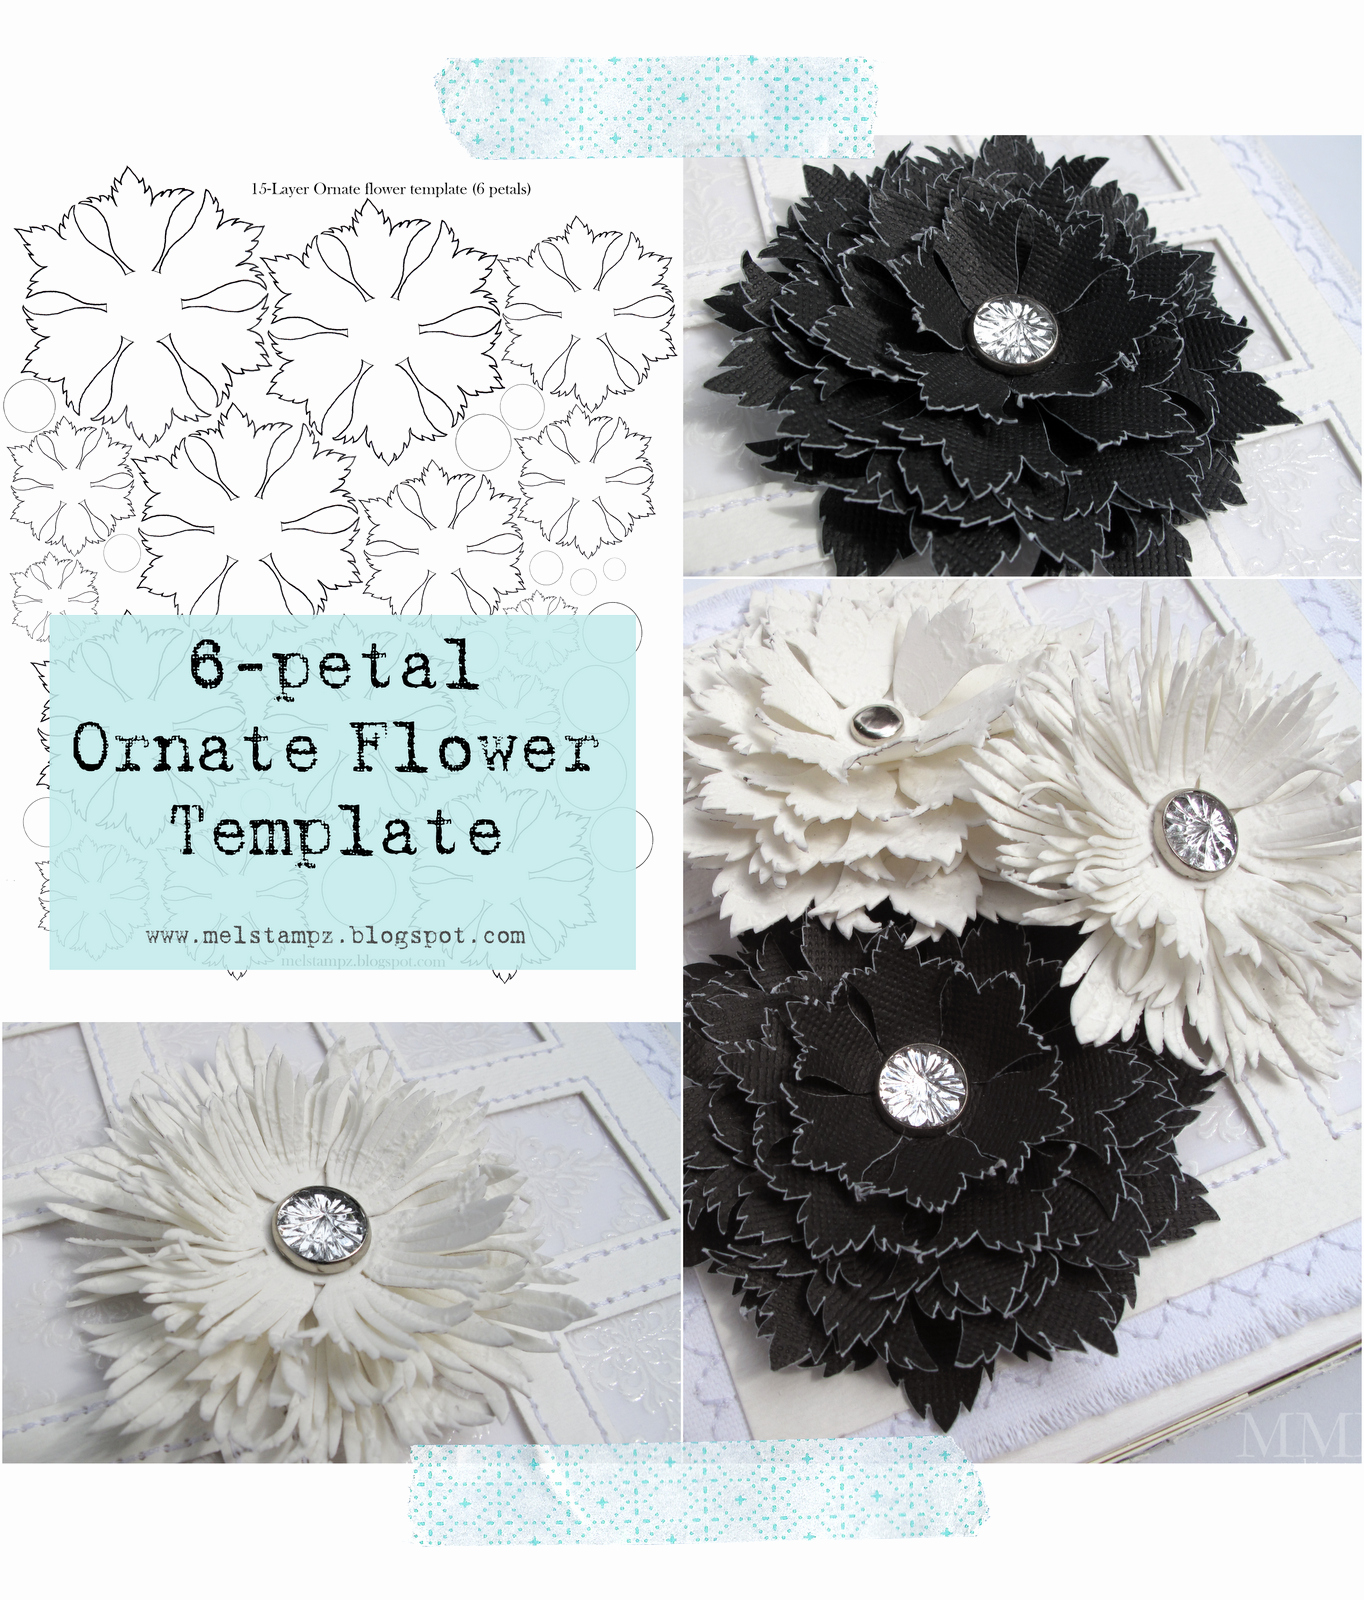 Template for Paper Flowers Beautiful Mel Stampz 6 Petal ornate Flower Template